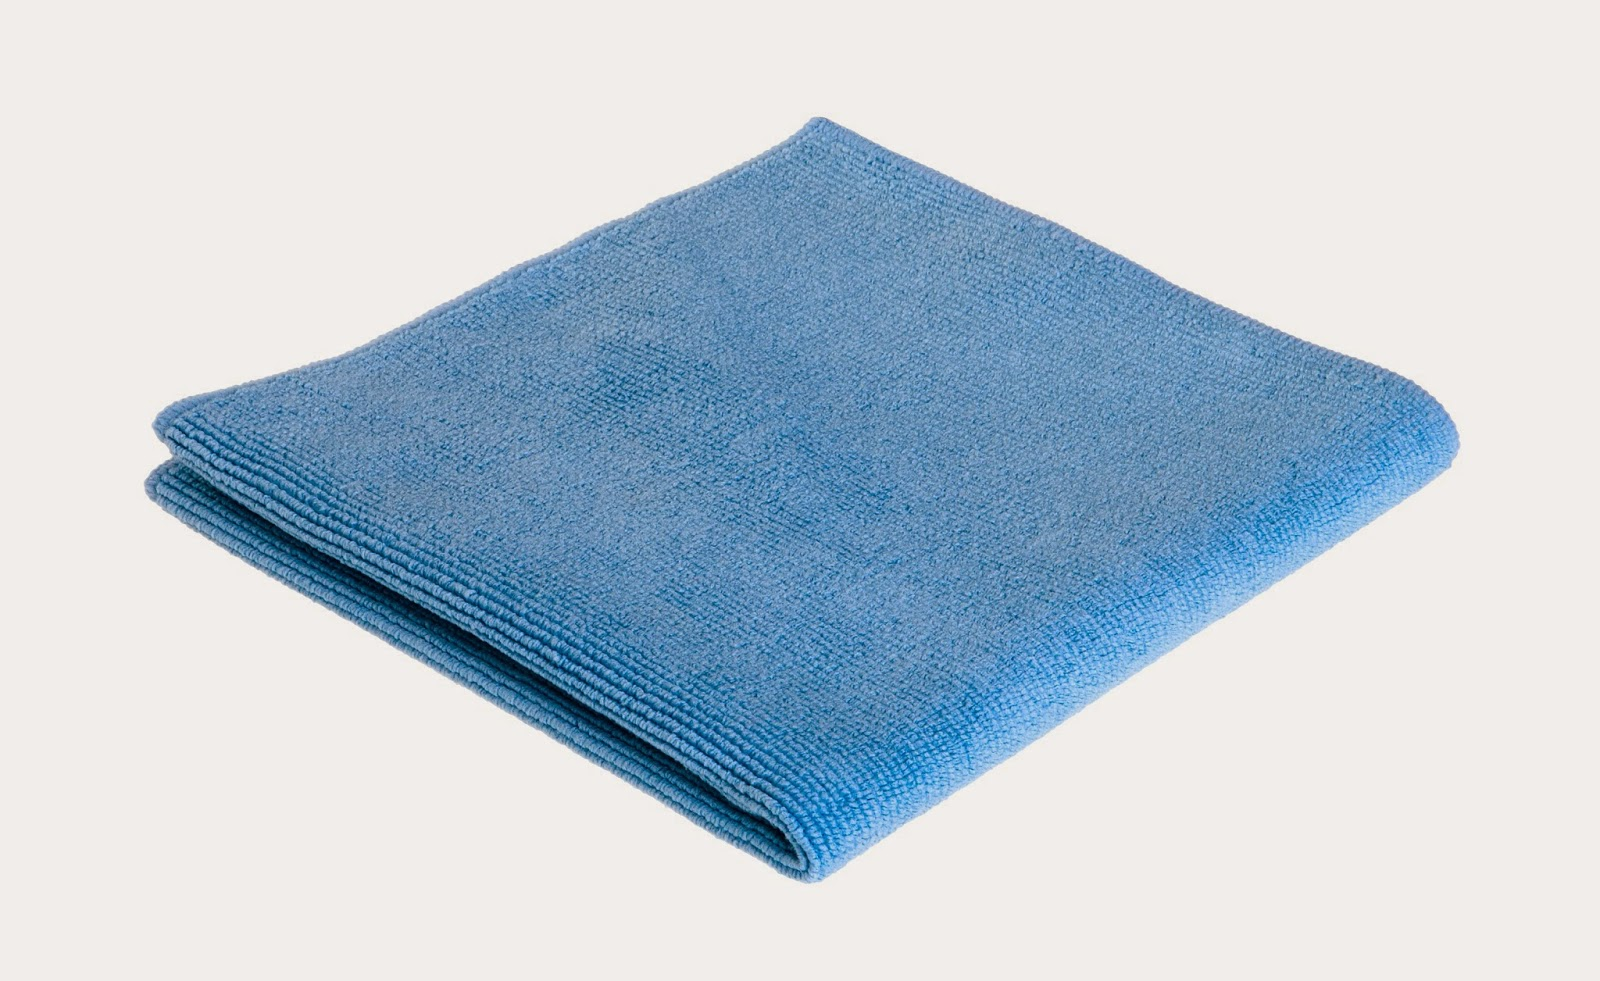 Review - Enviro Cloth by Norwex